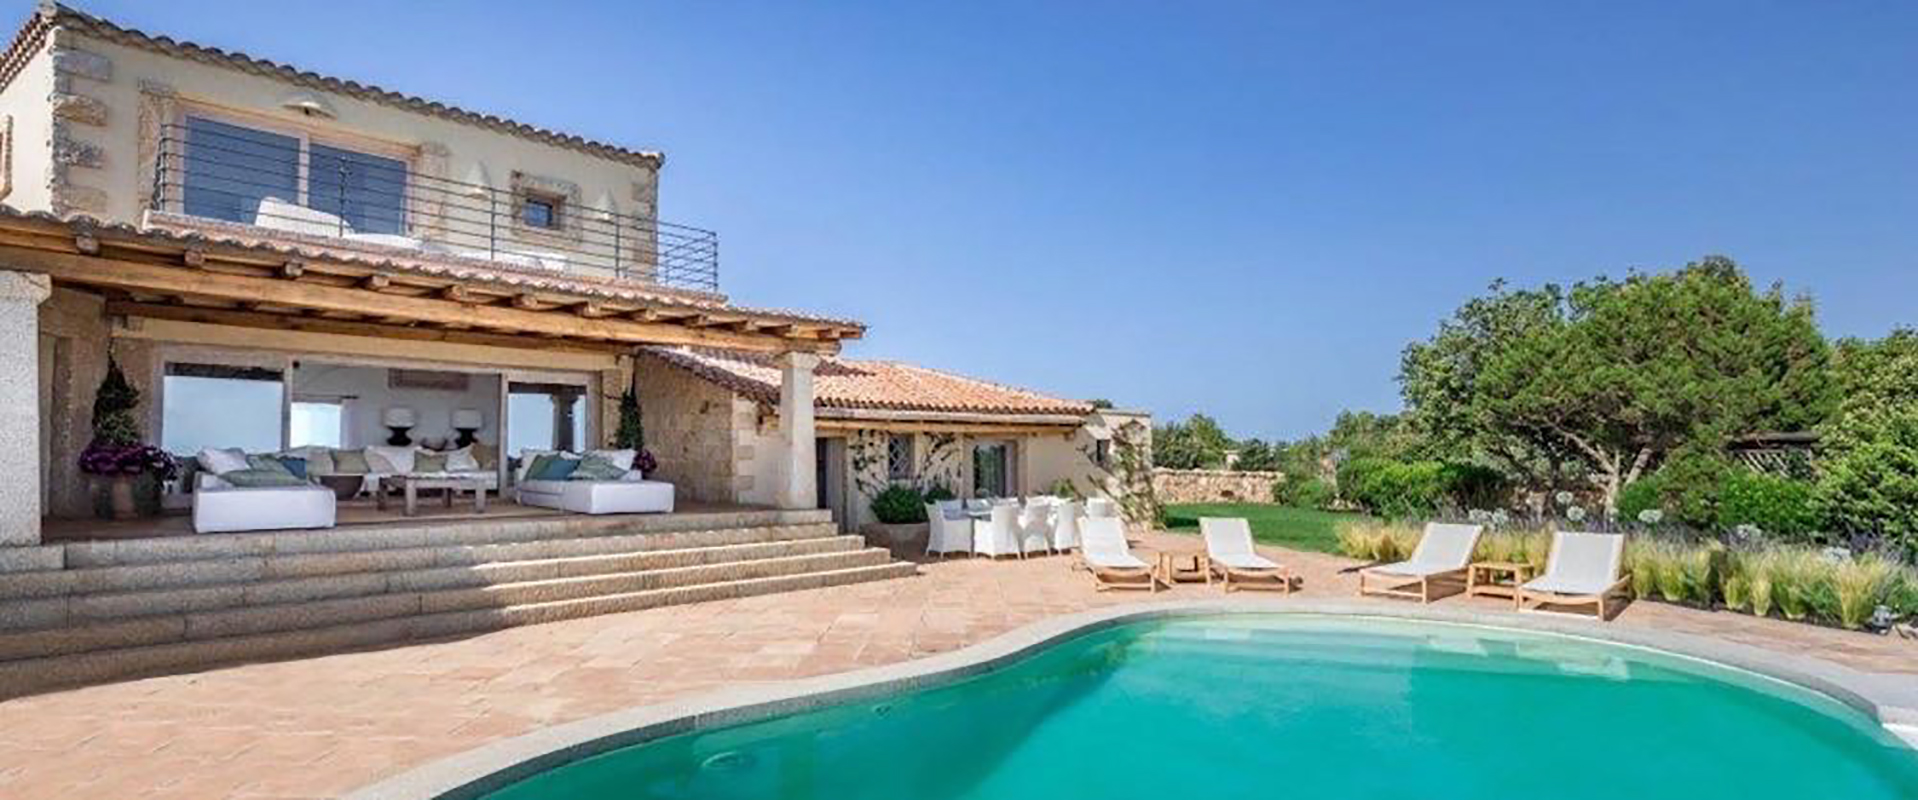 LUXURY VILLA FOR SALE PORTO CERVO